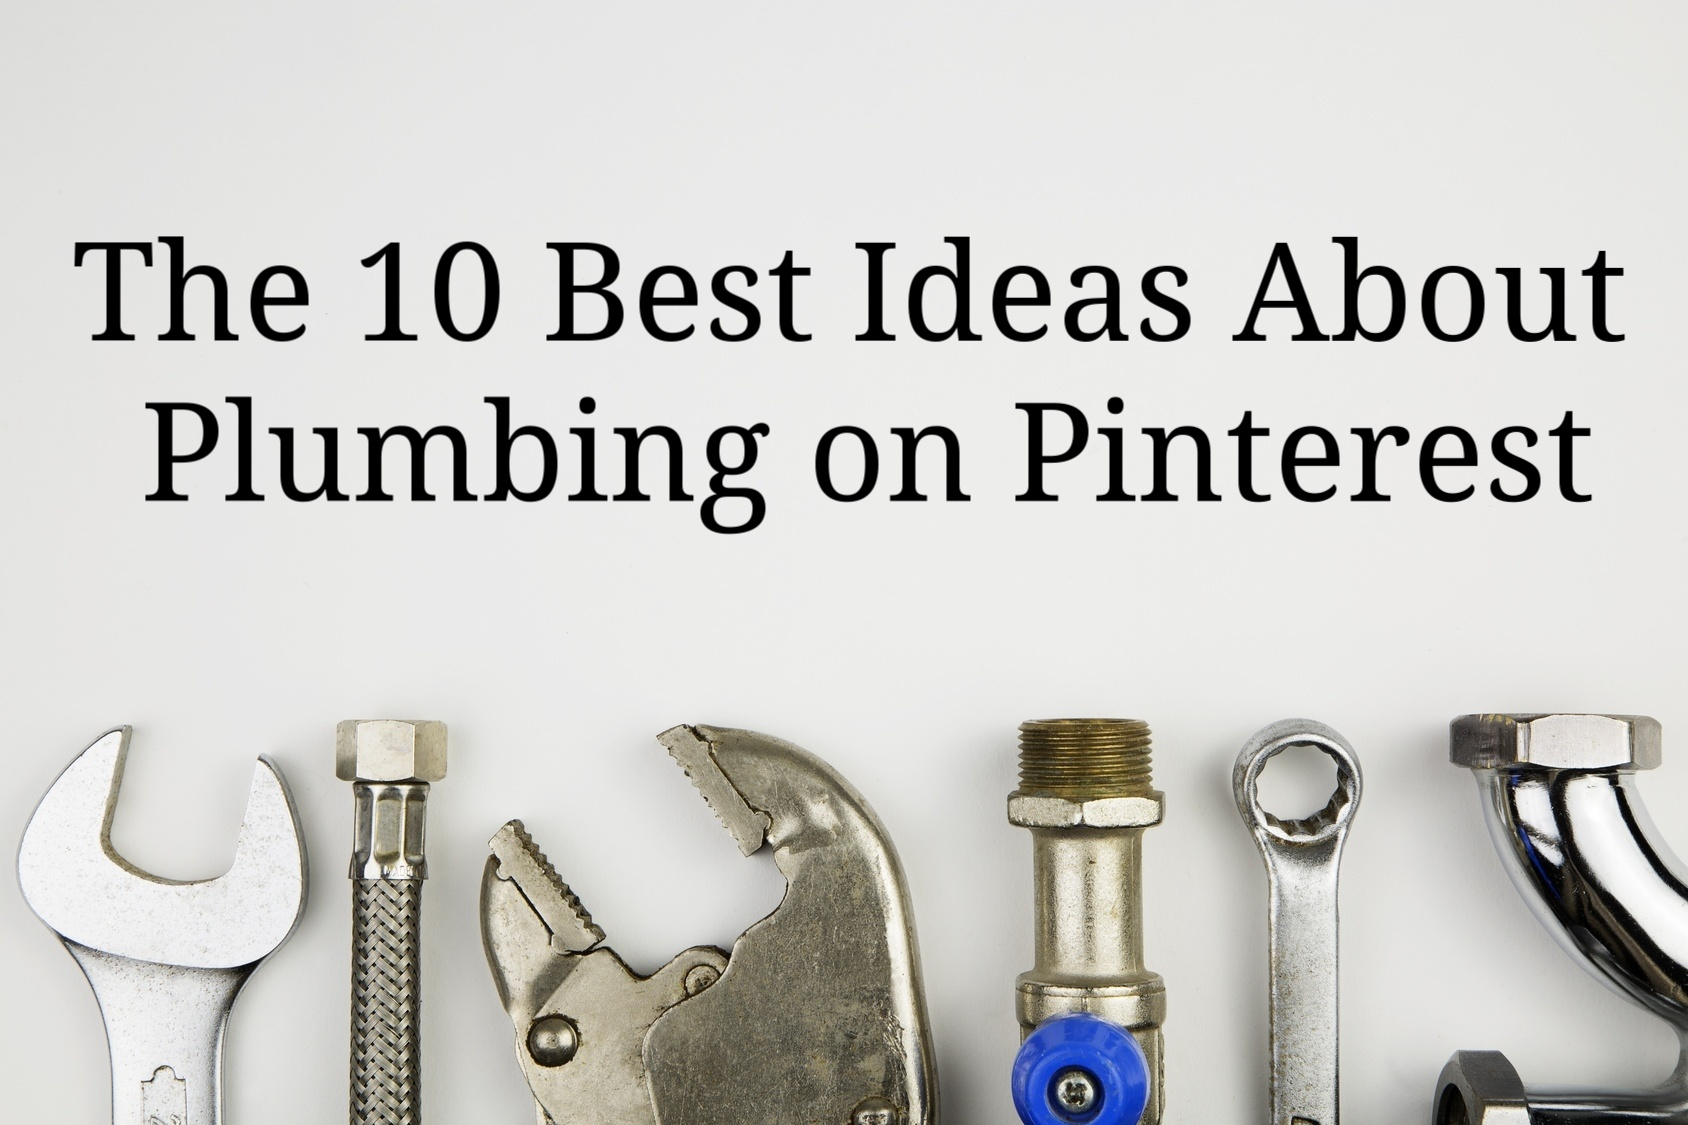 The 10 Best Ideas About Plumbing on Pinterest